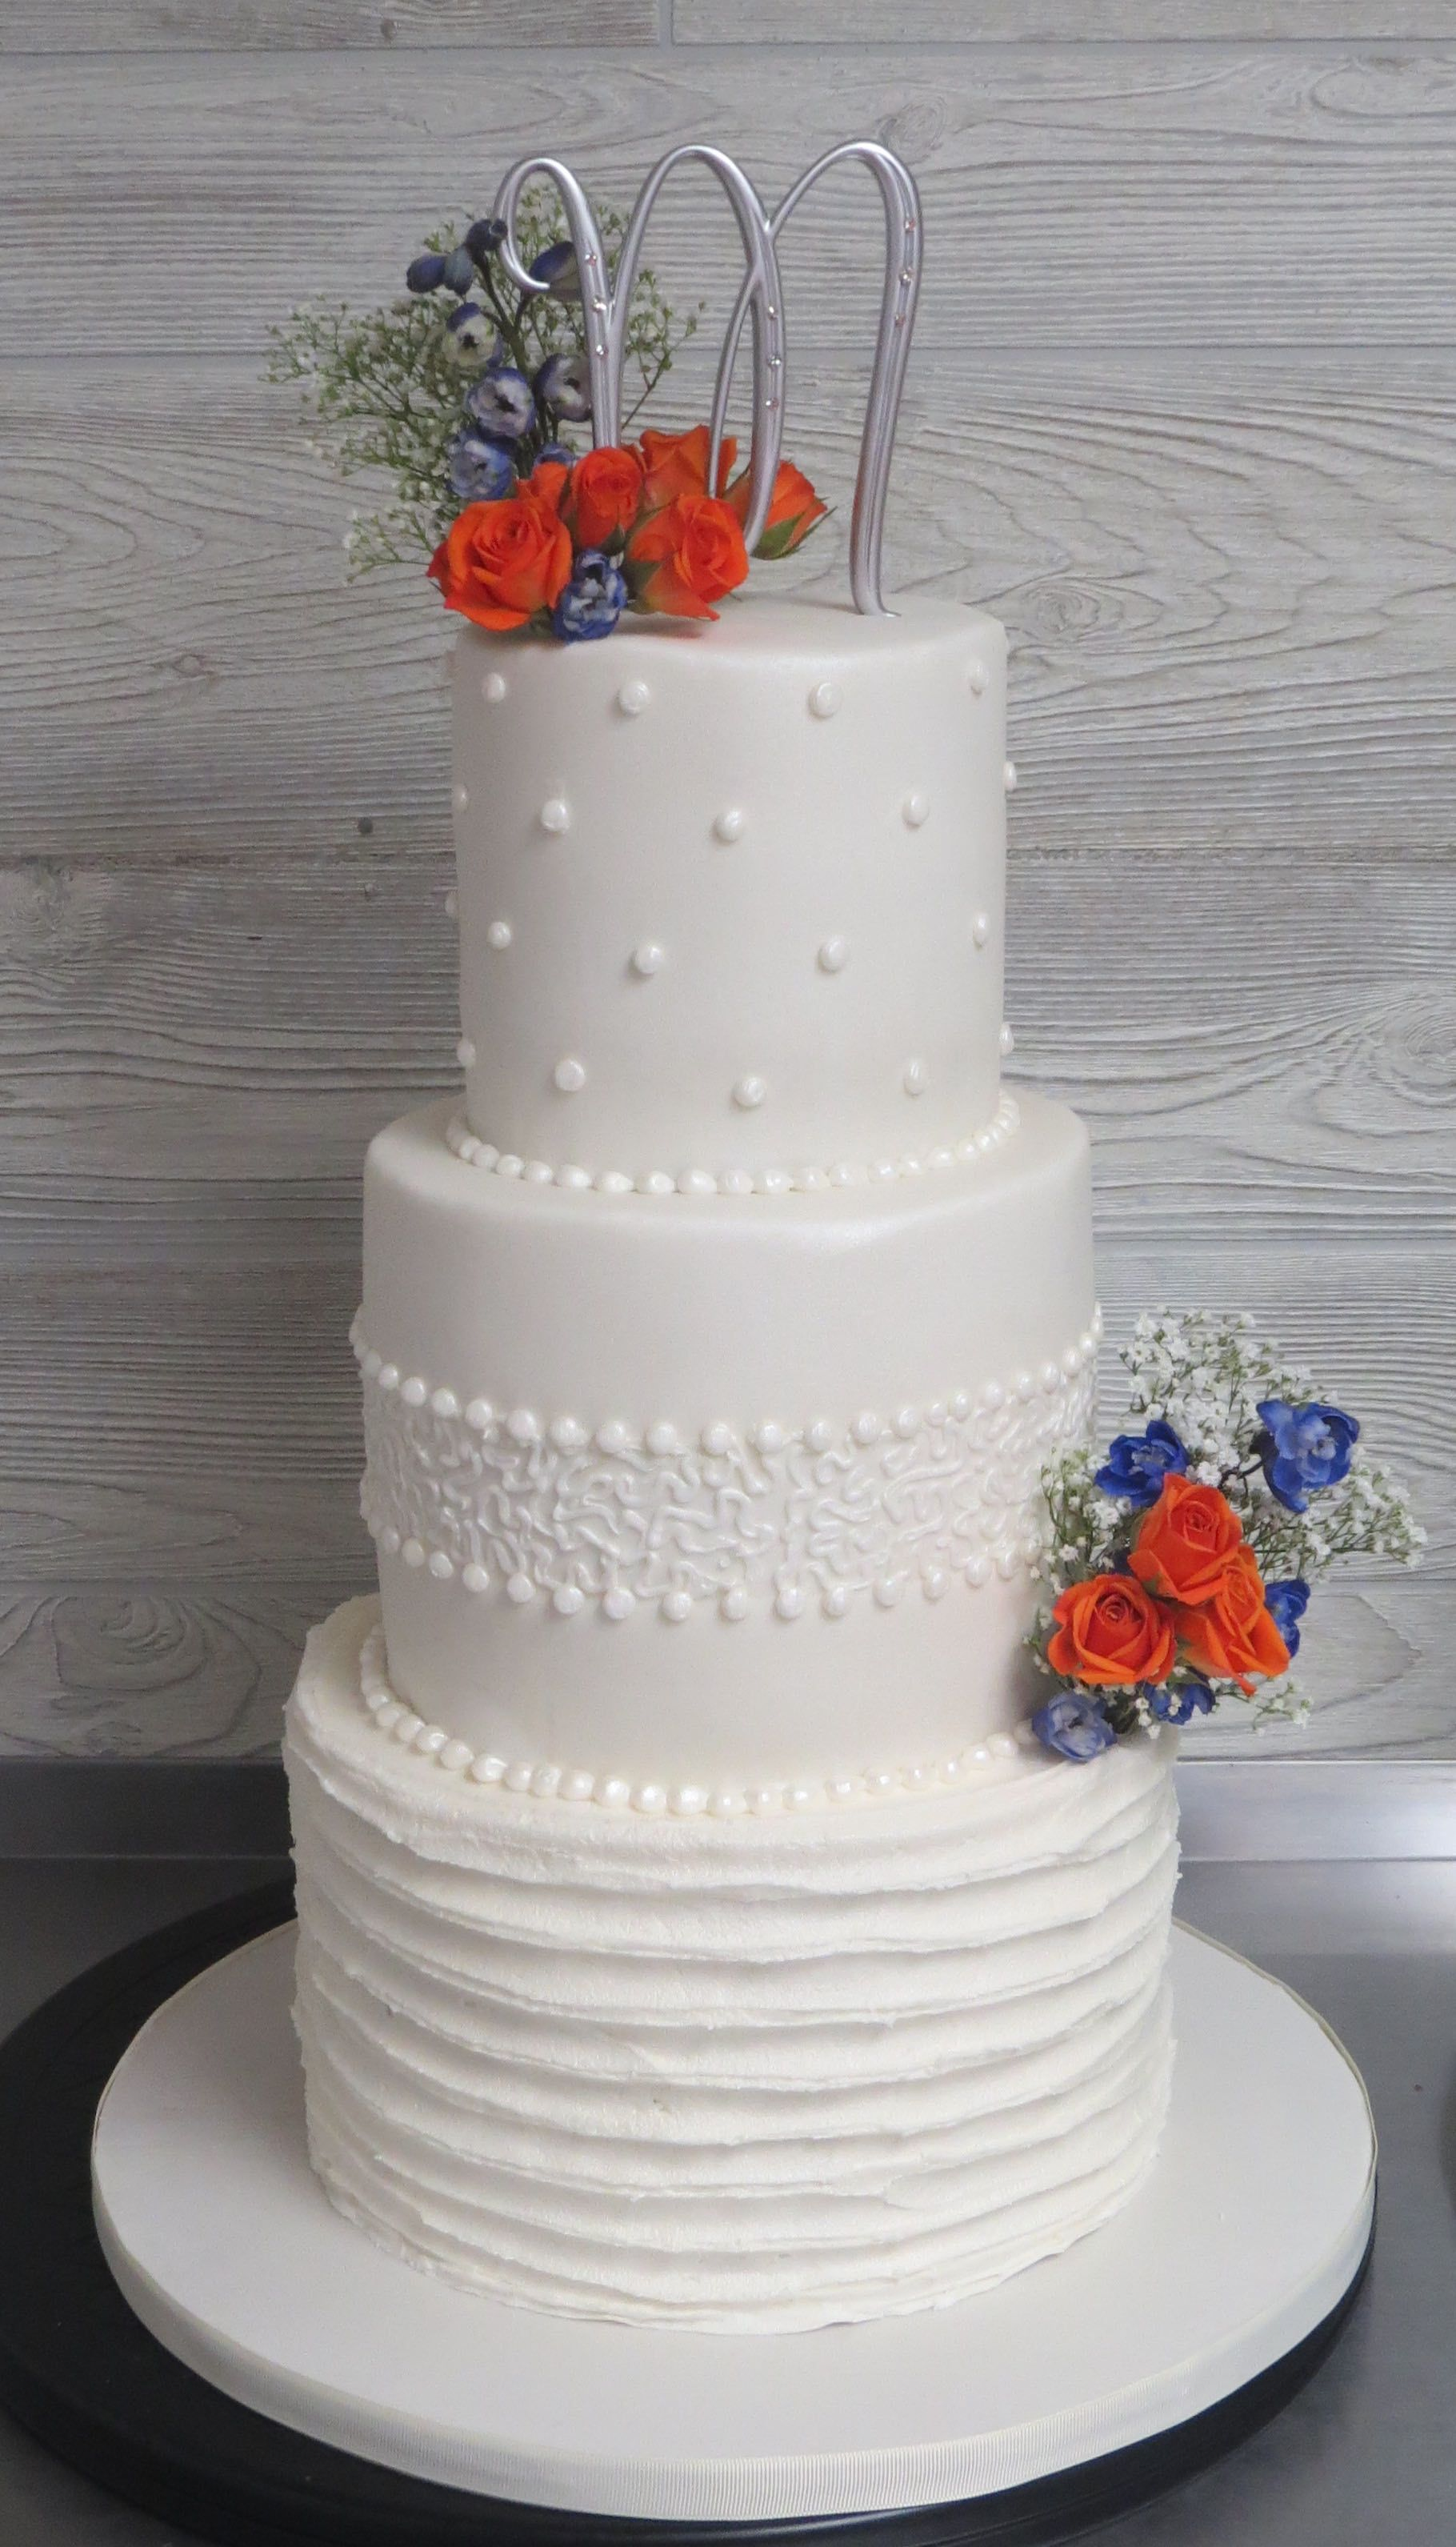 Simple, elegant wedding cake decorated with pearls and lace ...